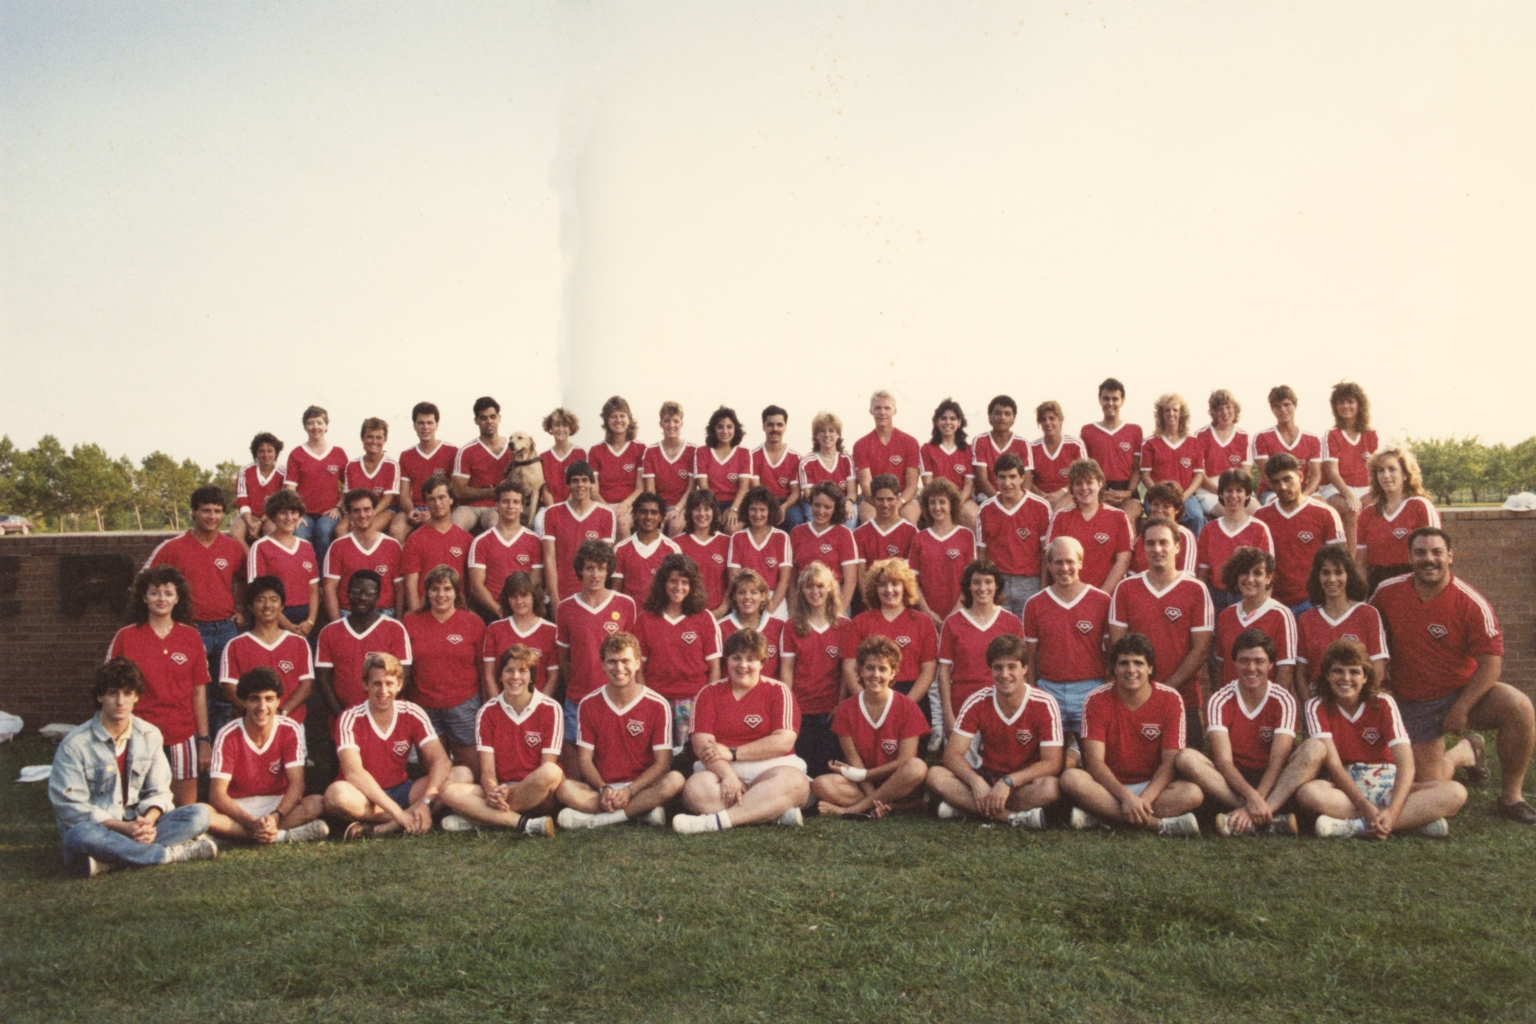 1986 Student Orientation Services Leaders